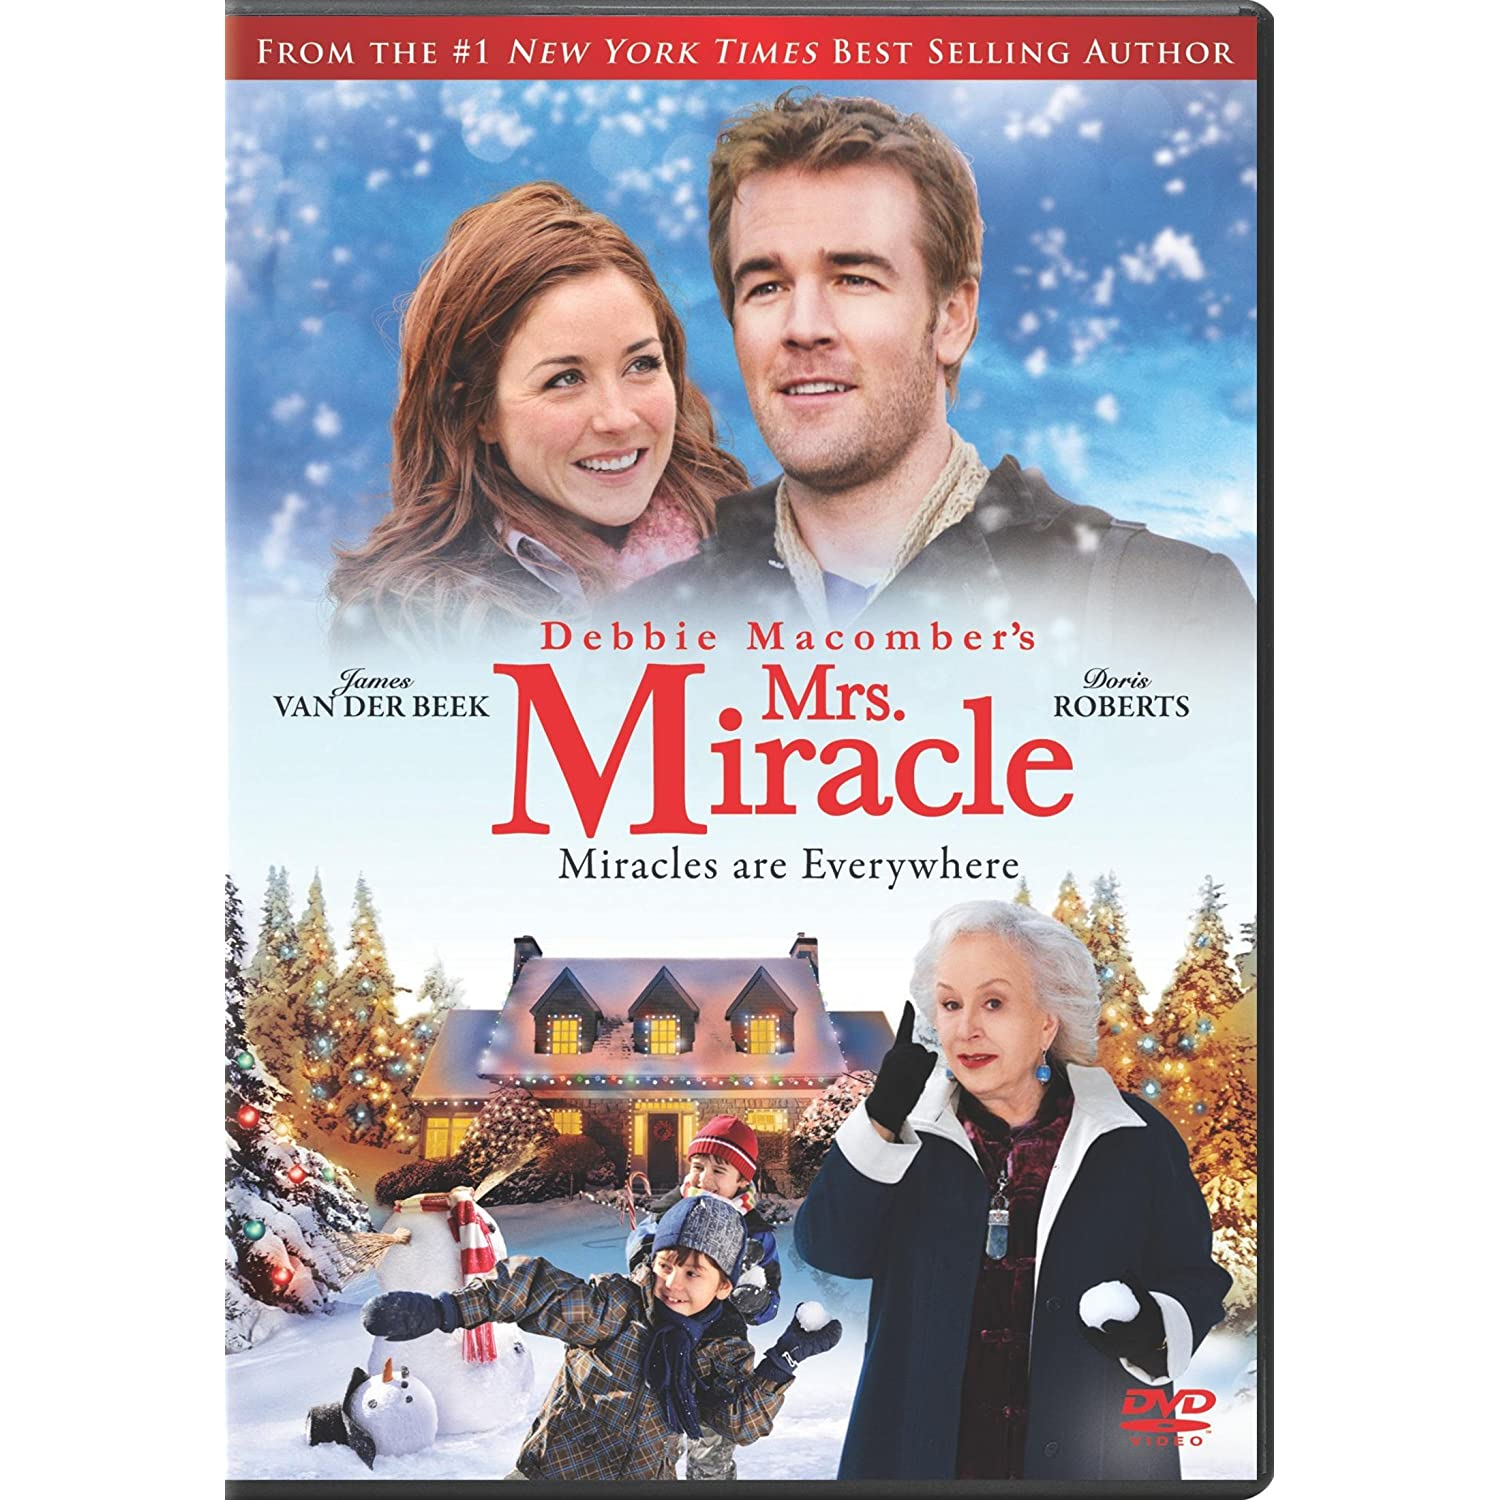 mrs miracle book and dvd giveaway